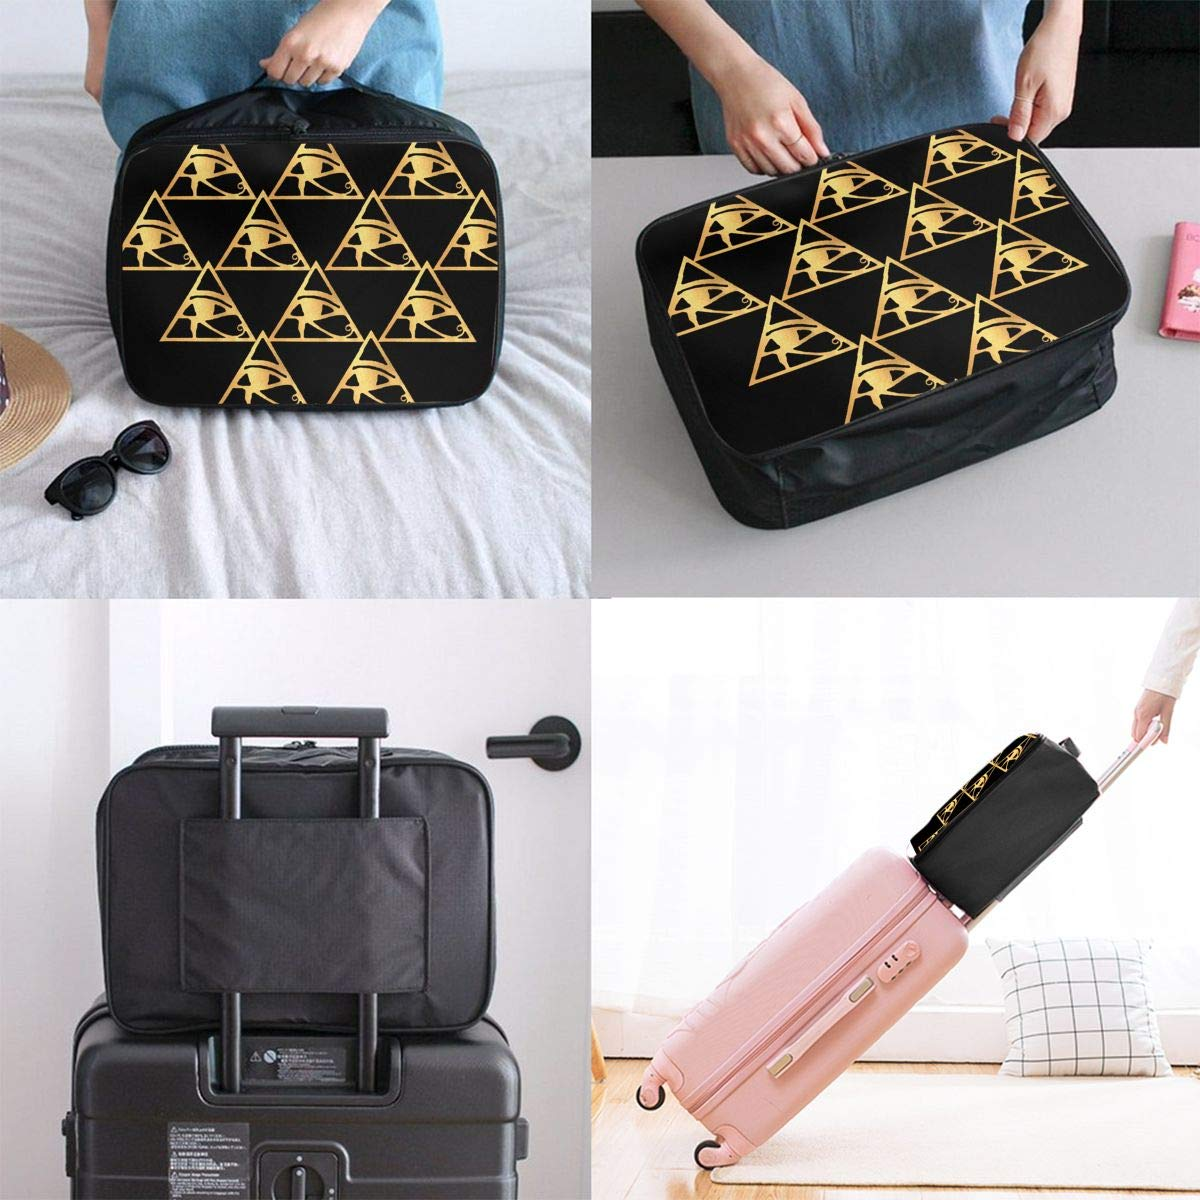 STWINW Triangle Golden Flower Travel Fashion Lightweight Large Capacity Portable Waterproof Foldable Storage Carry Luggage Bag Luggage Duffle Tote Bag Hanging Travel Toiletry Bag Travel Makeup Bag